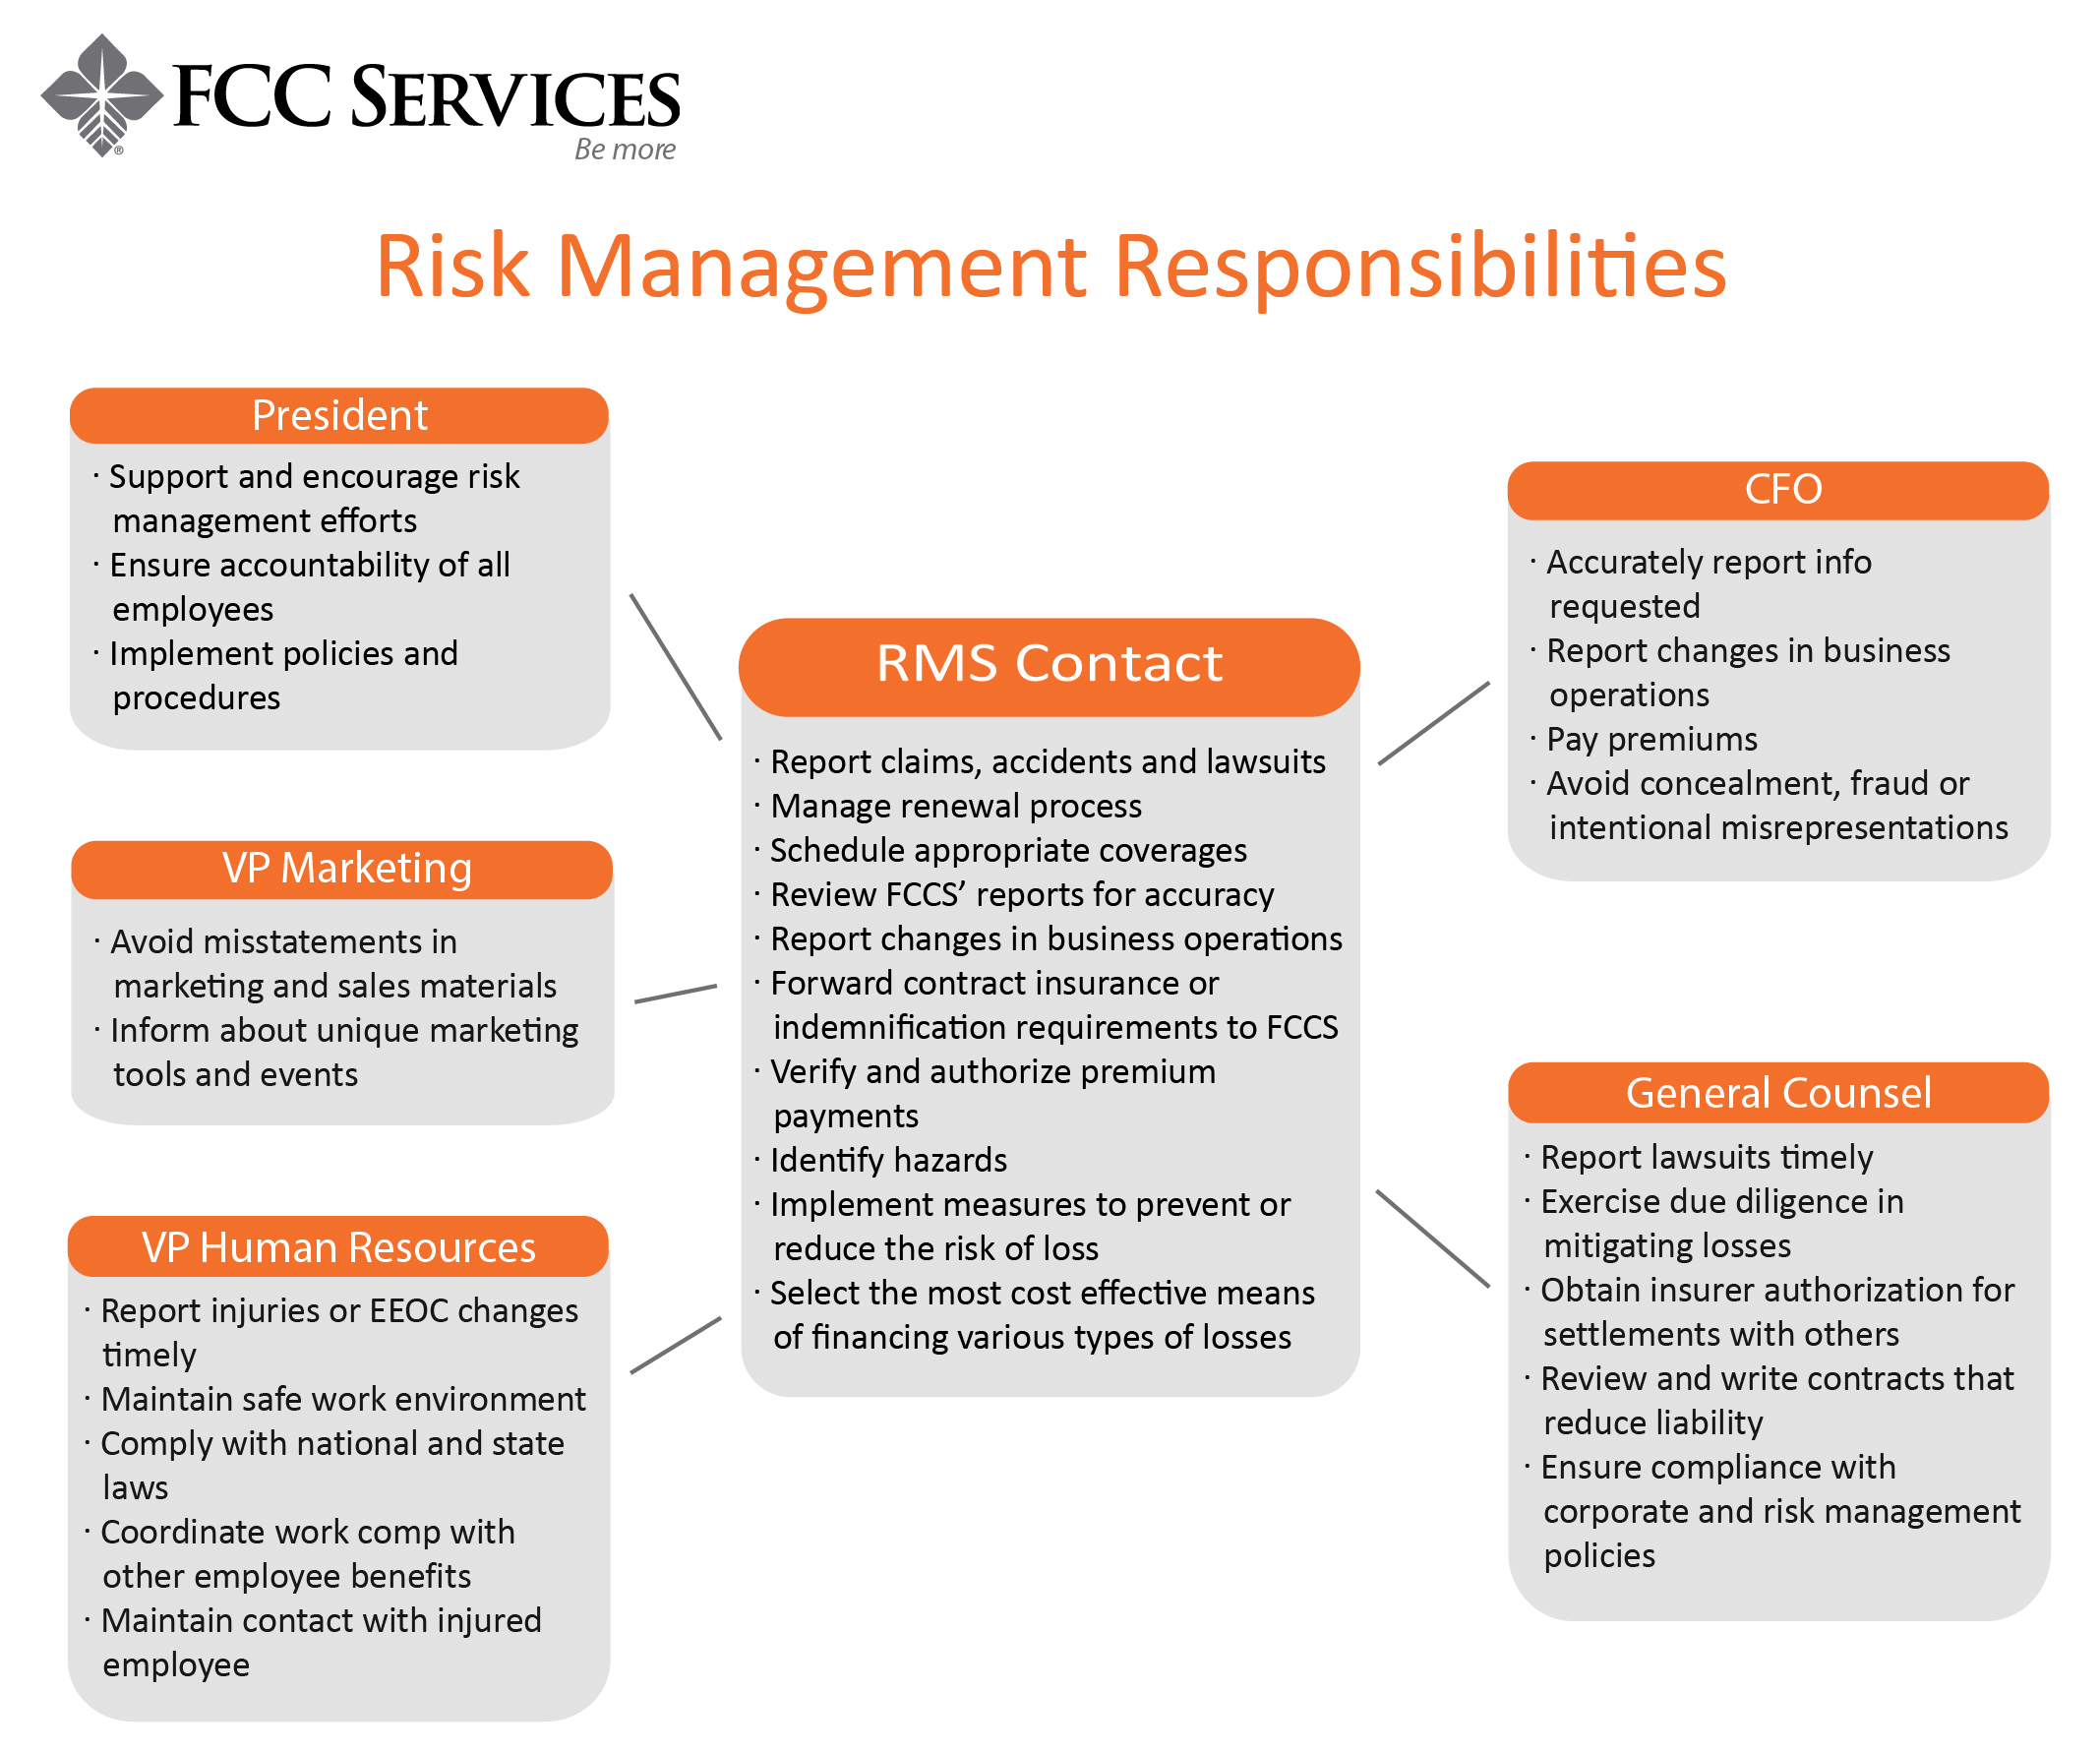 Risk-Management-Responsibilities-01.jpg?mtime=20180215165241#asset:28253